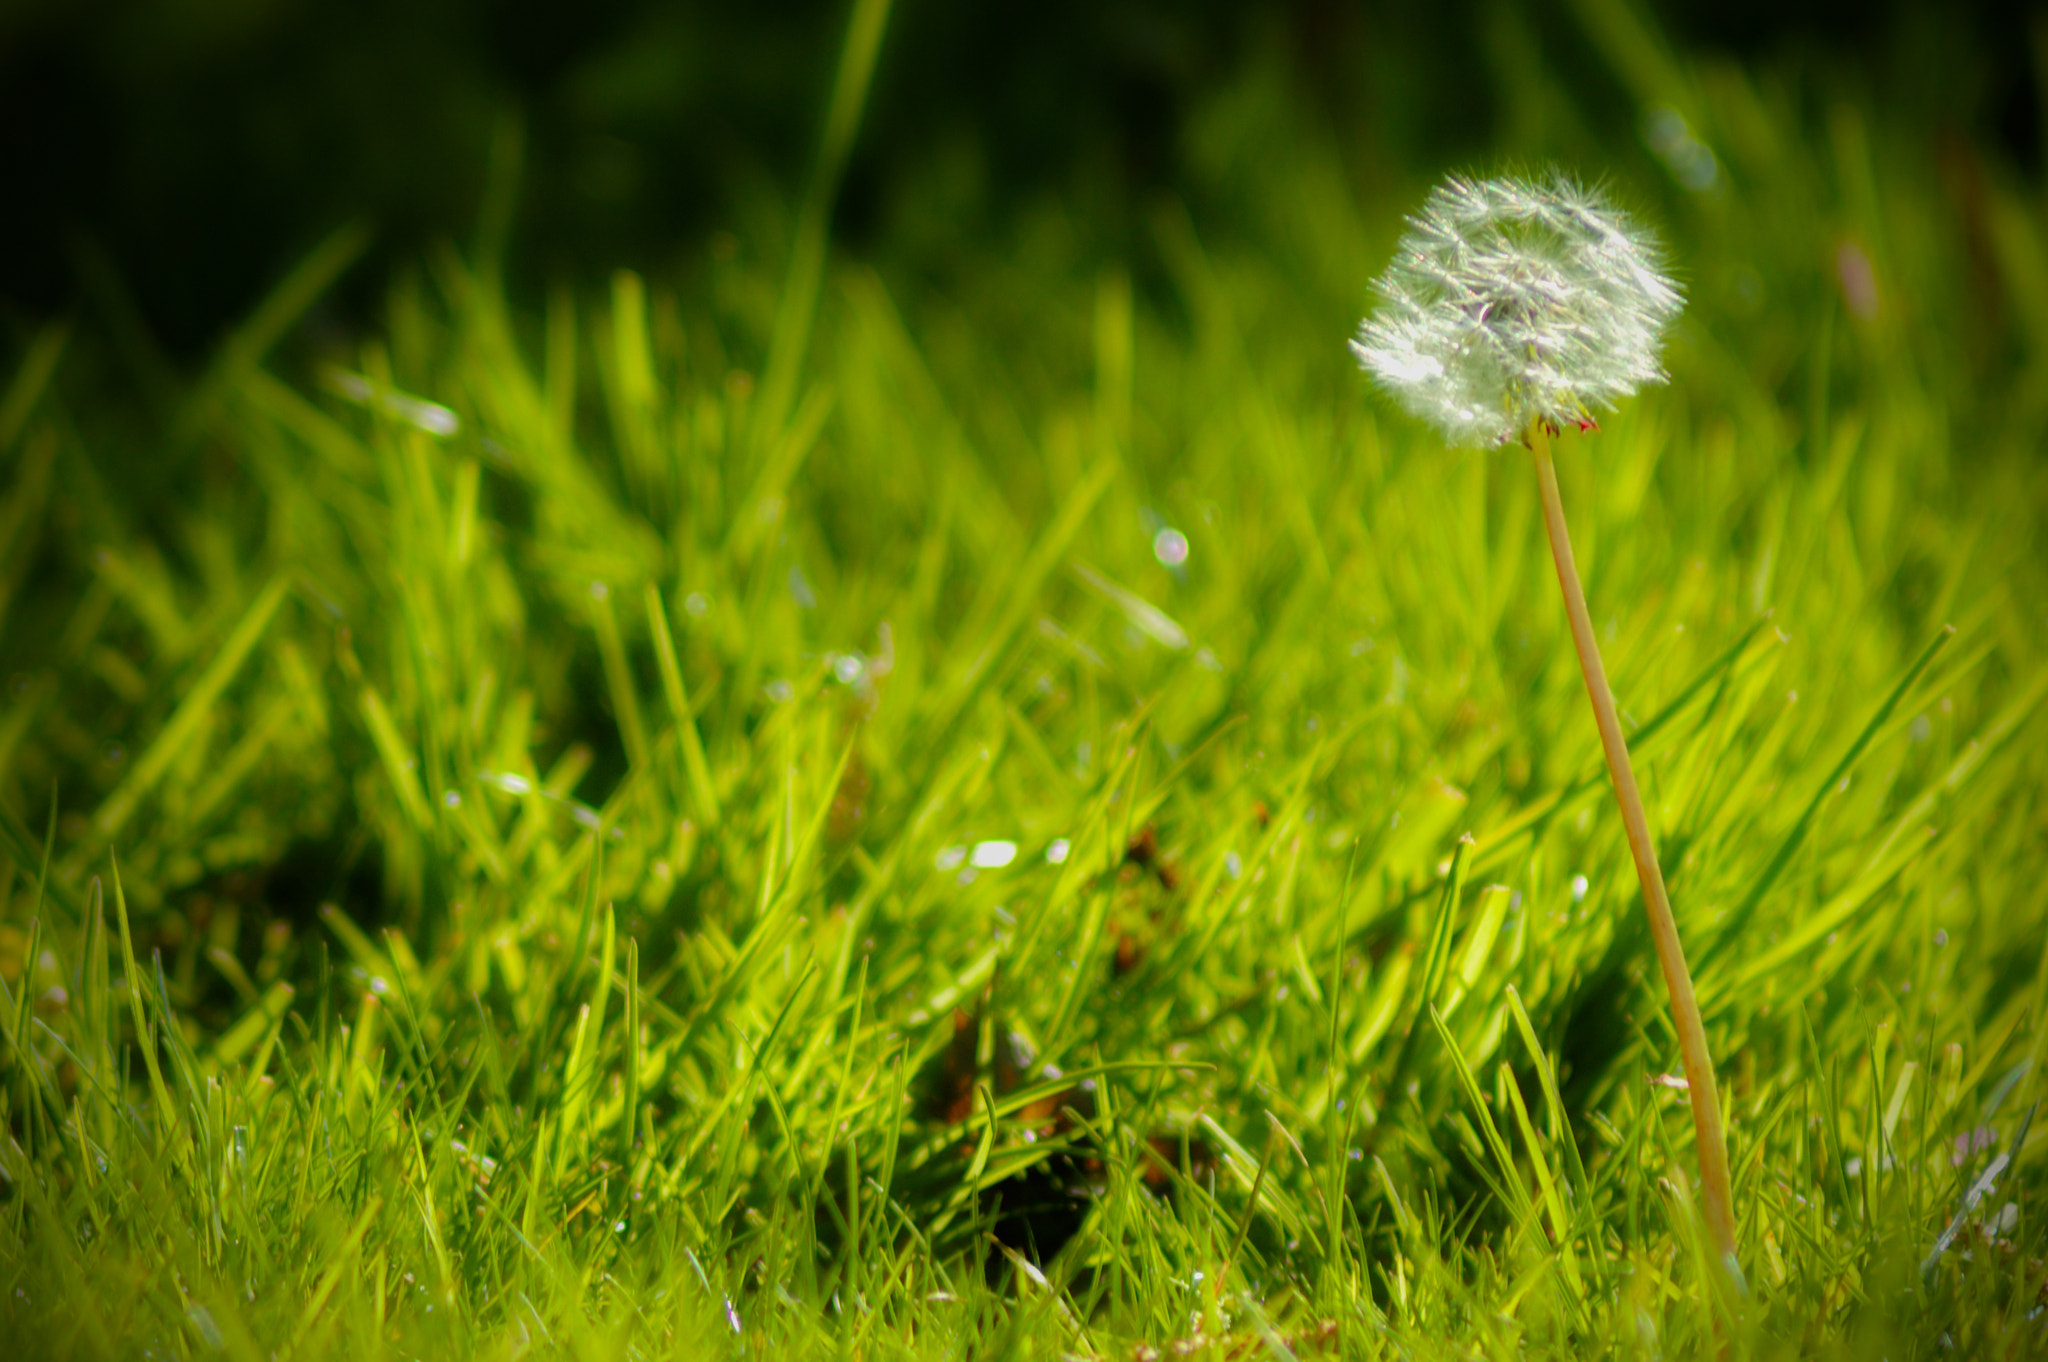 Photograph Dandelion by Giacomo Signorino on 500px